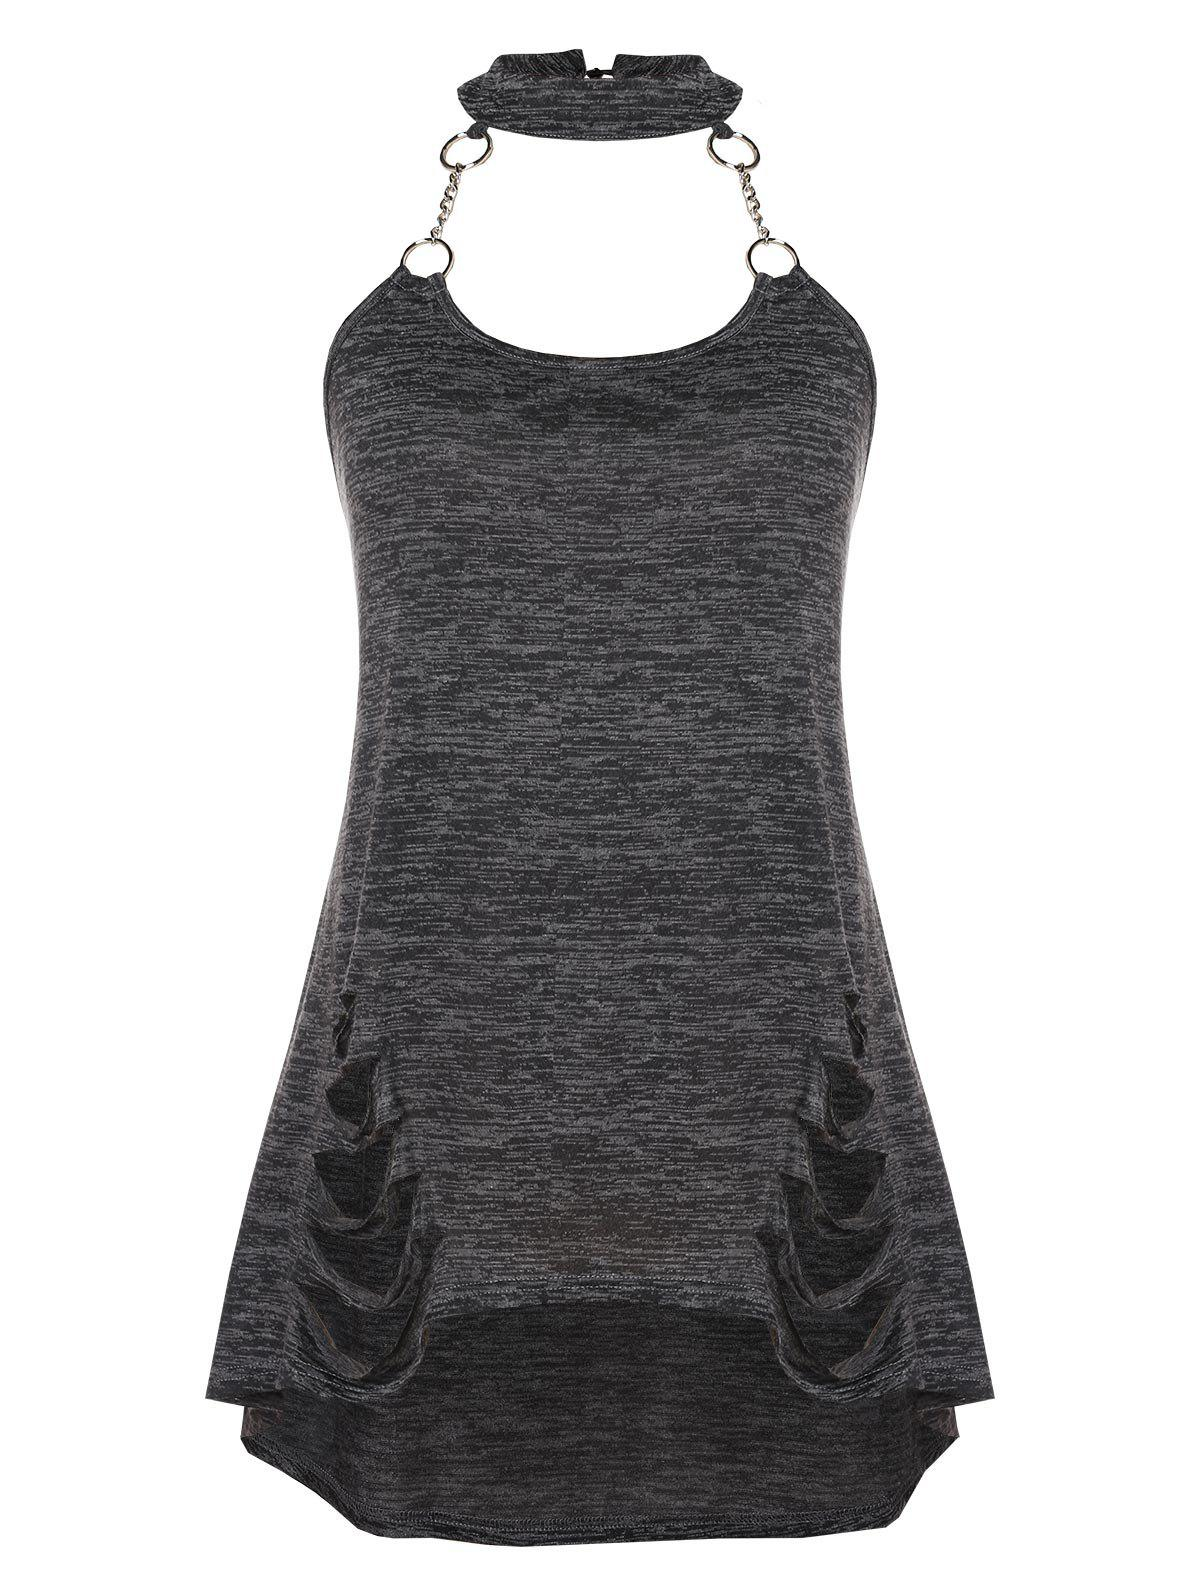 Latest Chains Ripped Plus Size Halter Tank Top